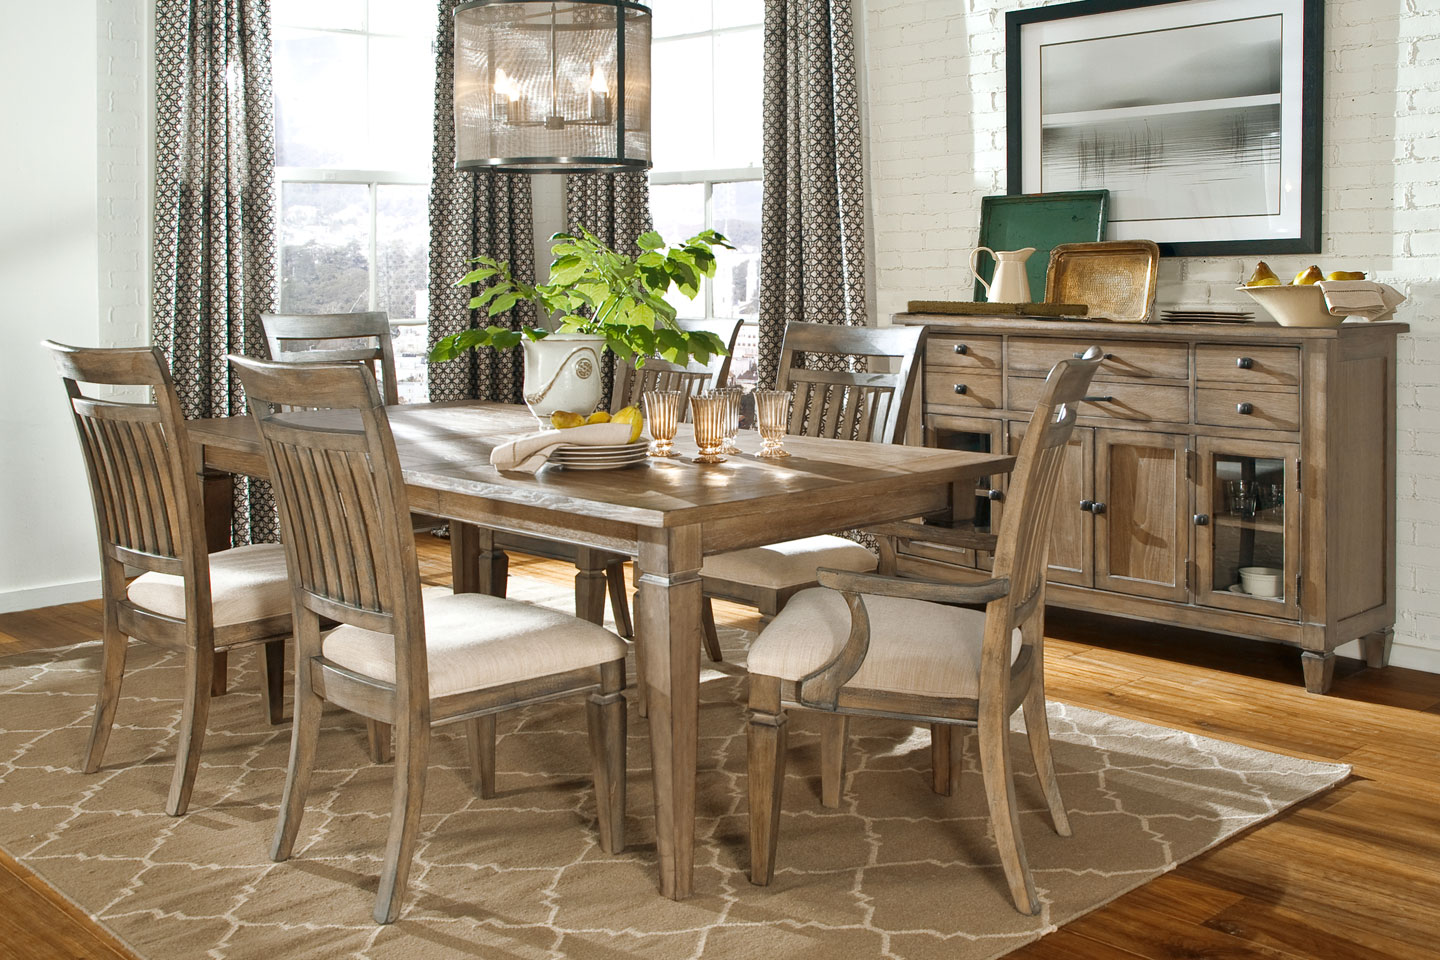 Rustic buffet table furniture - Dining Room Tables